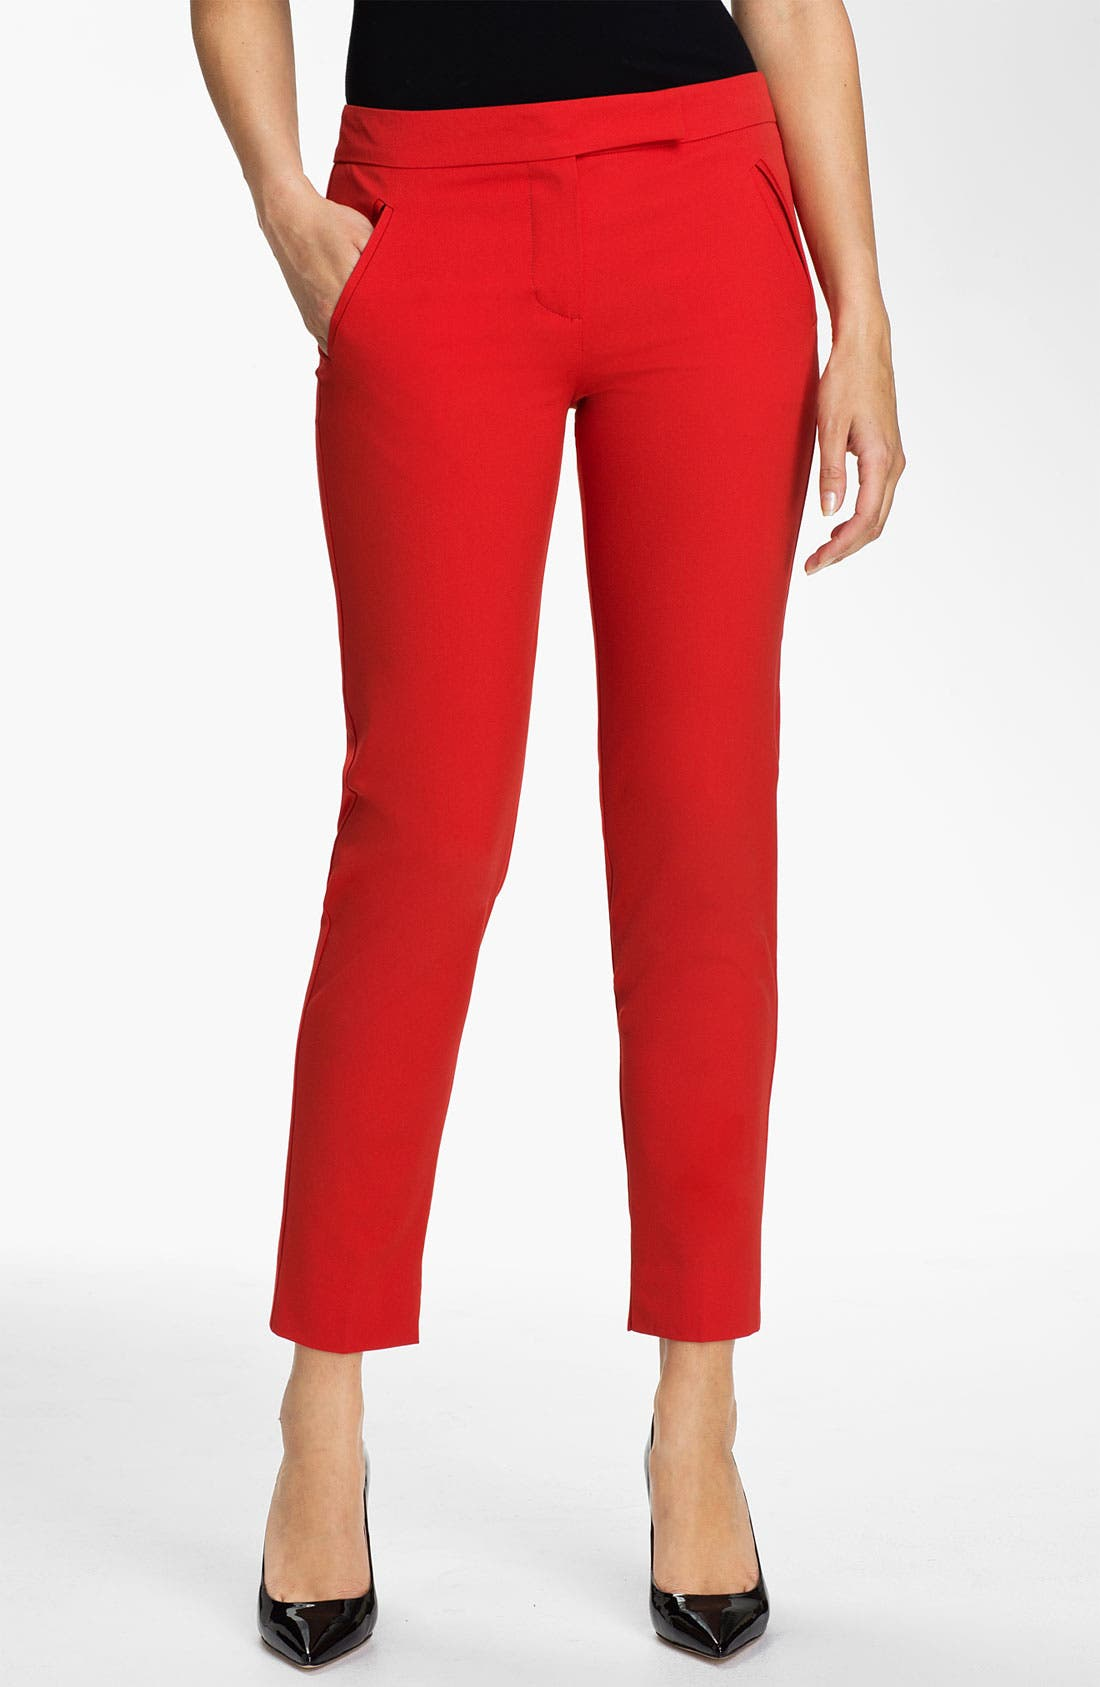 Alternate Image 1 Selected - Trina Turk 'Solitaire' Skinny Pants